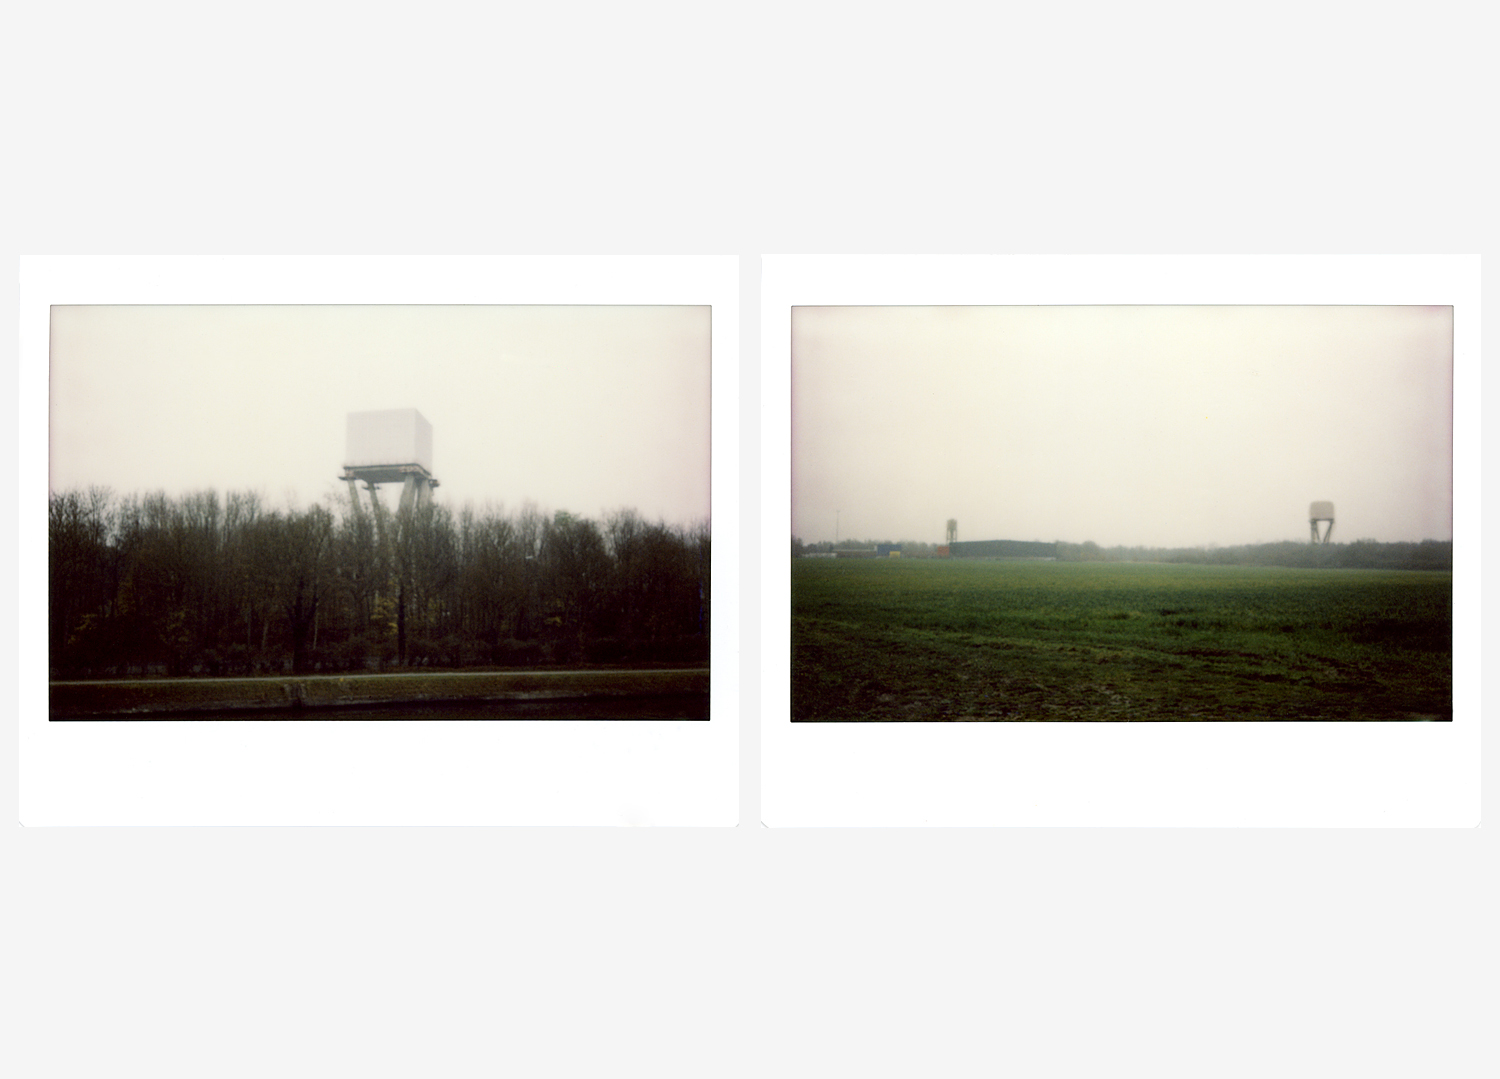 polaroid watertower  009